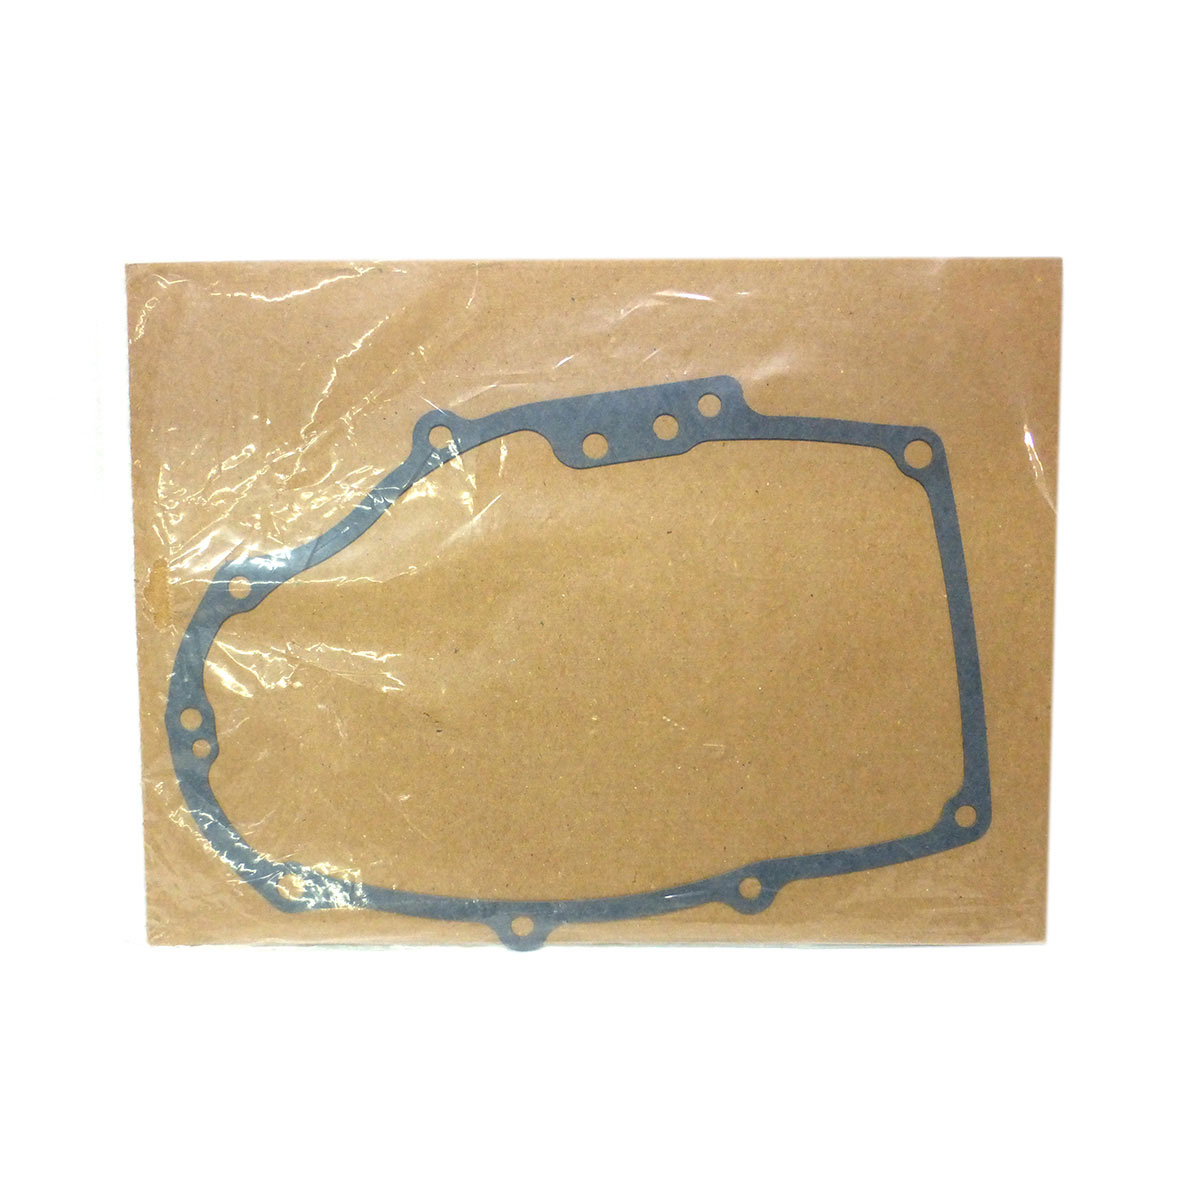 Crankcase Cover Gasket KM-11060-7008